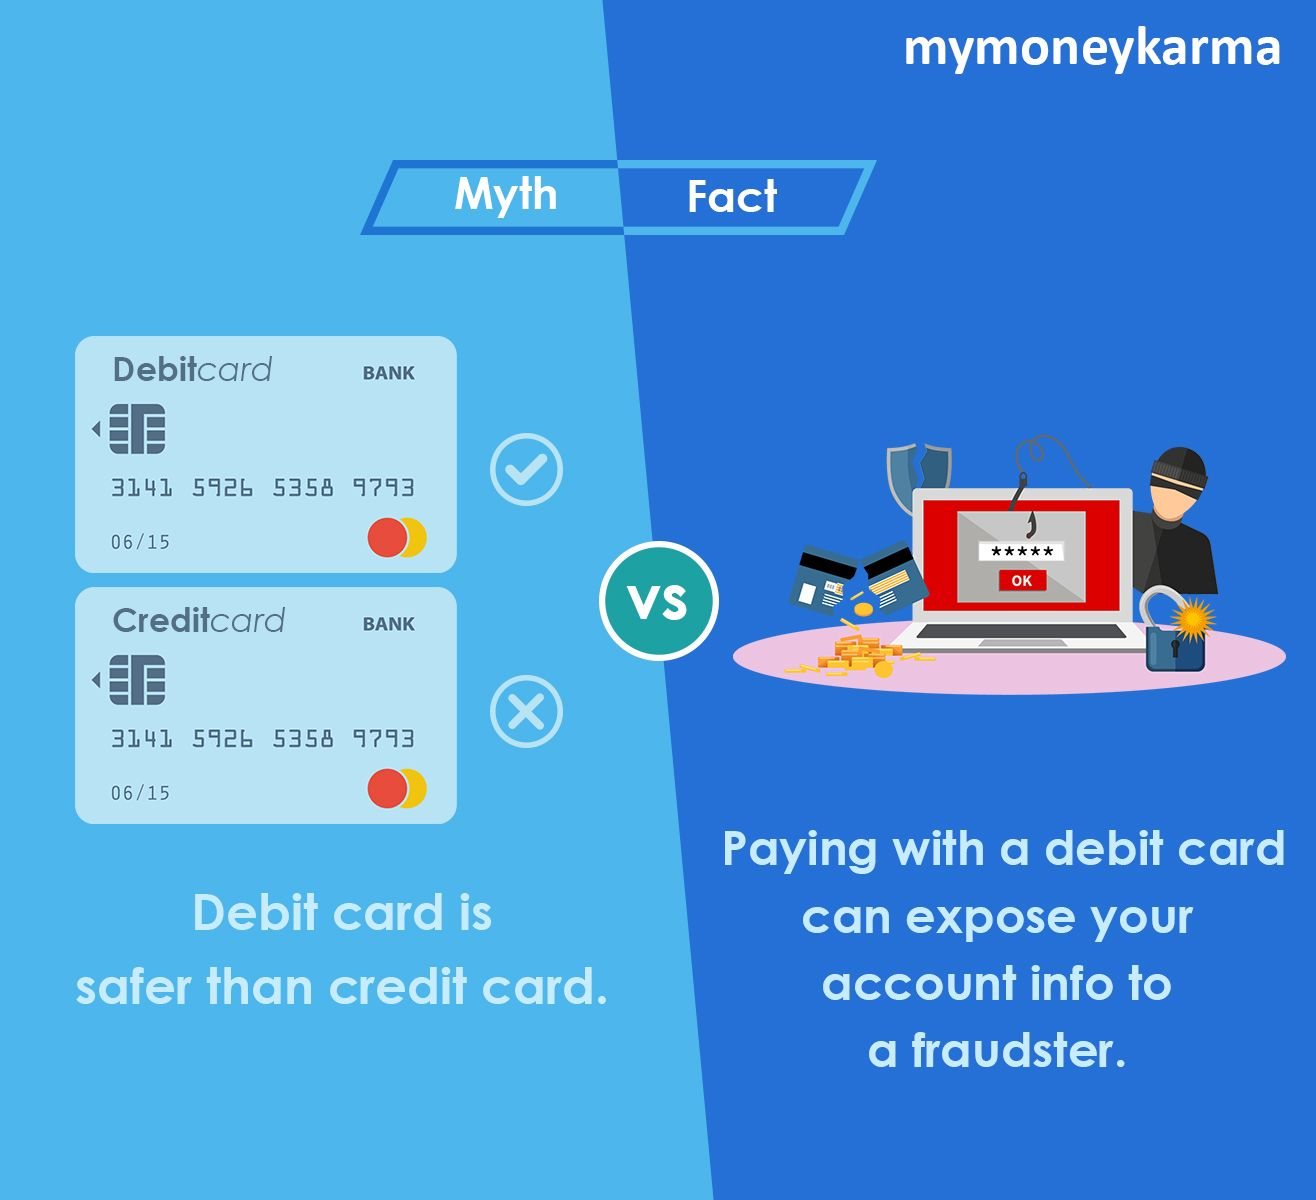 Credit Cards 101 Myths Busted Click To Know More Facts Http Ow Ly G1jb30owrjm Mythsandfacts C Credit Card Help Closing Credit Cards Credit Card